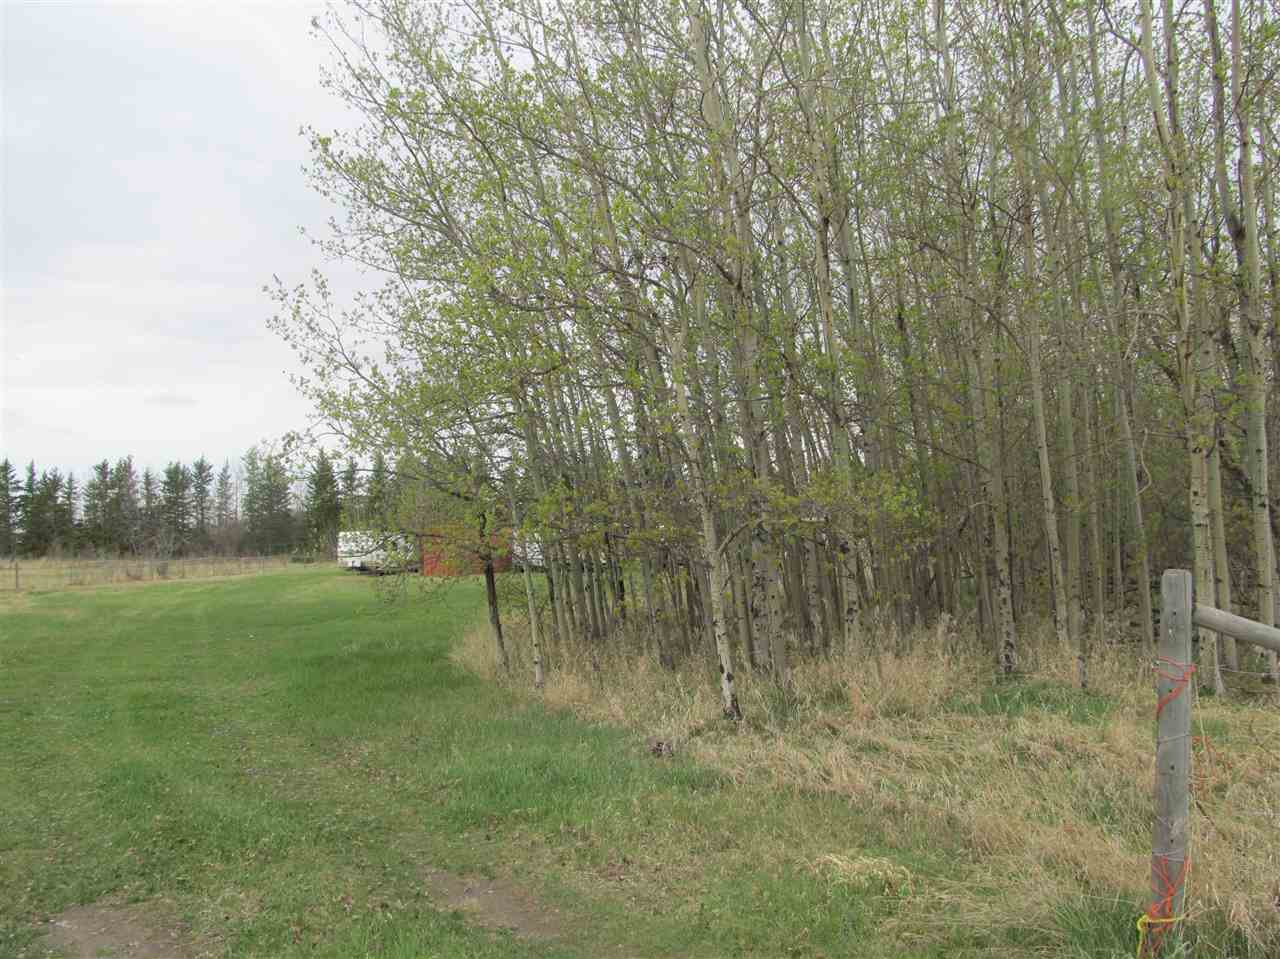 Photo 2: 19 22515 Twp Rd 575A: Rural Sturgeon County Rural Land/Vacant Lot for sale : MLS(r) # E4061245